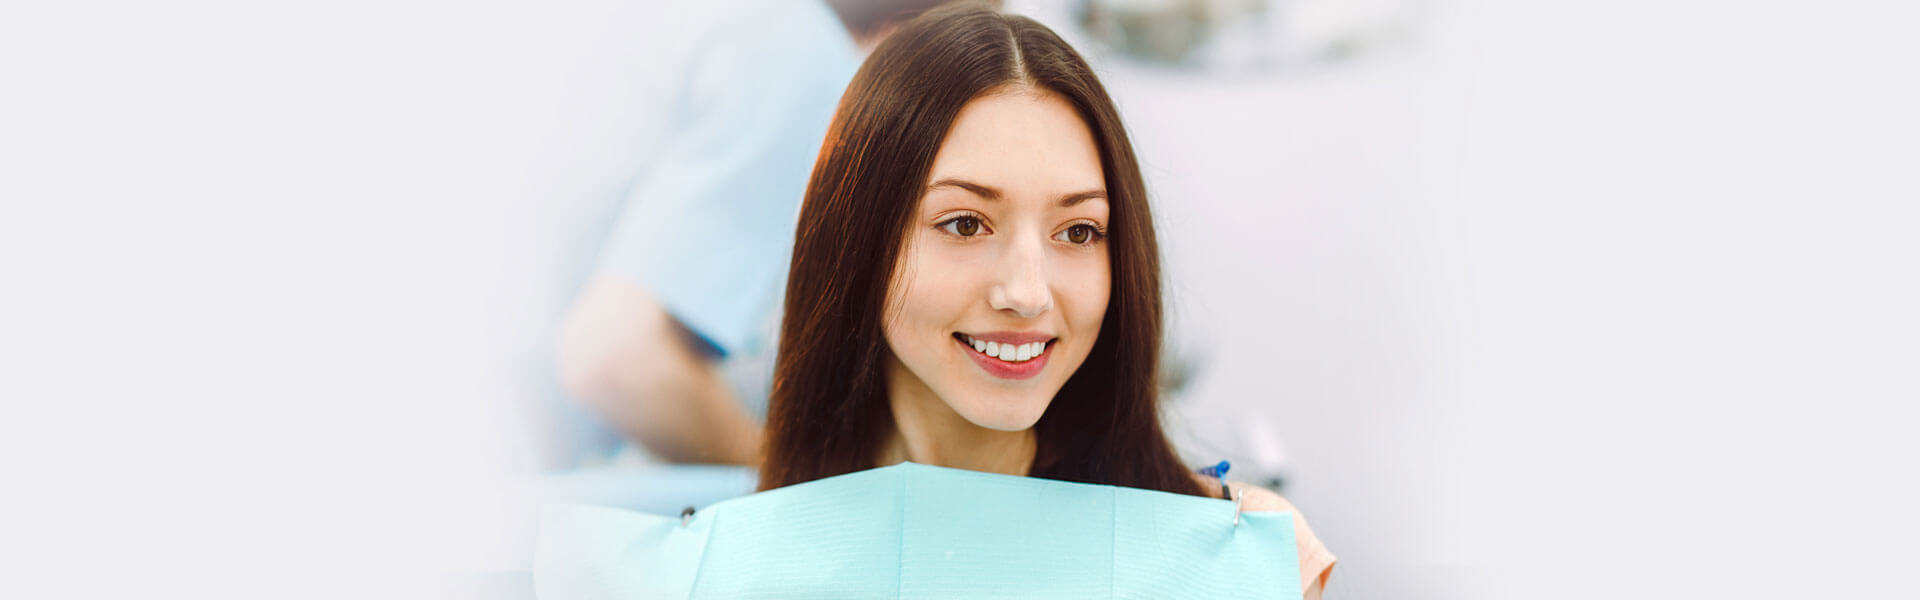 Considering Putting Off Your Periodontal Treatment? What's The Worst That Could Happen?